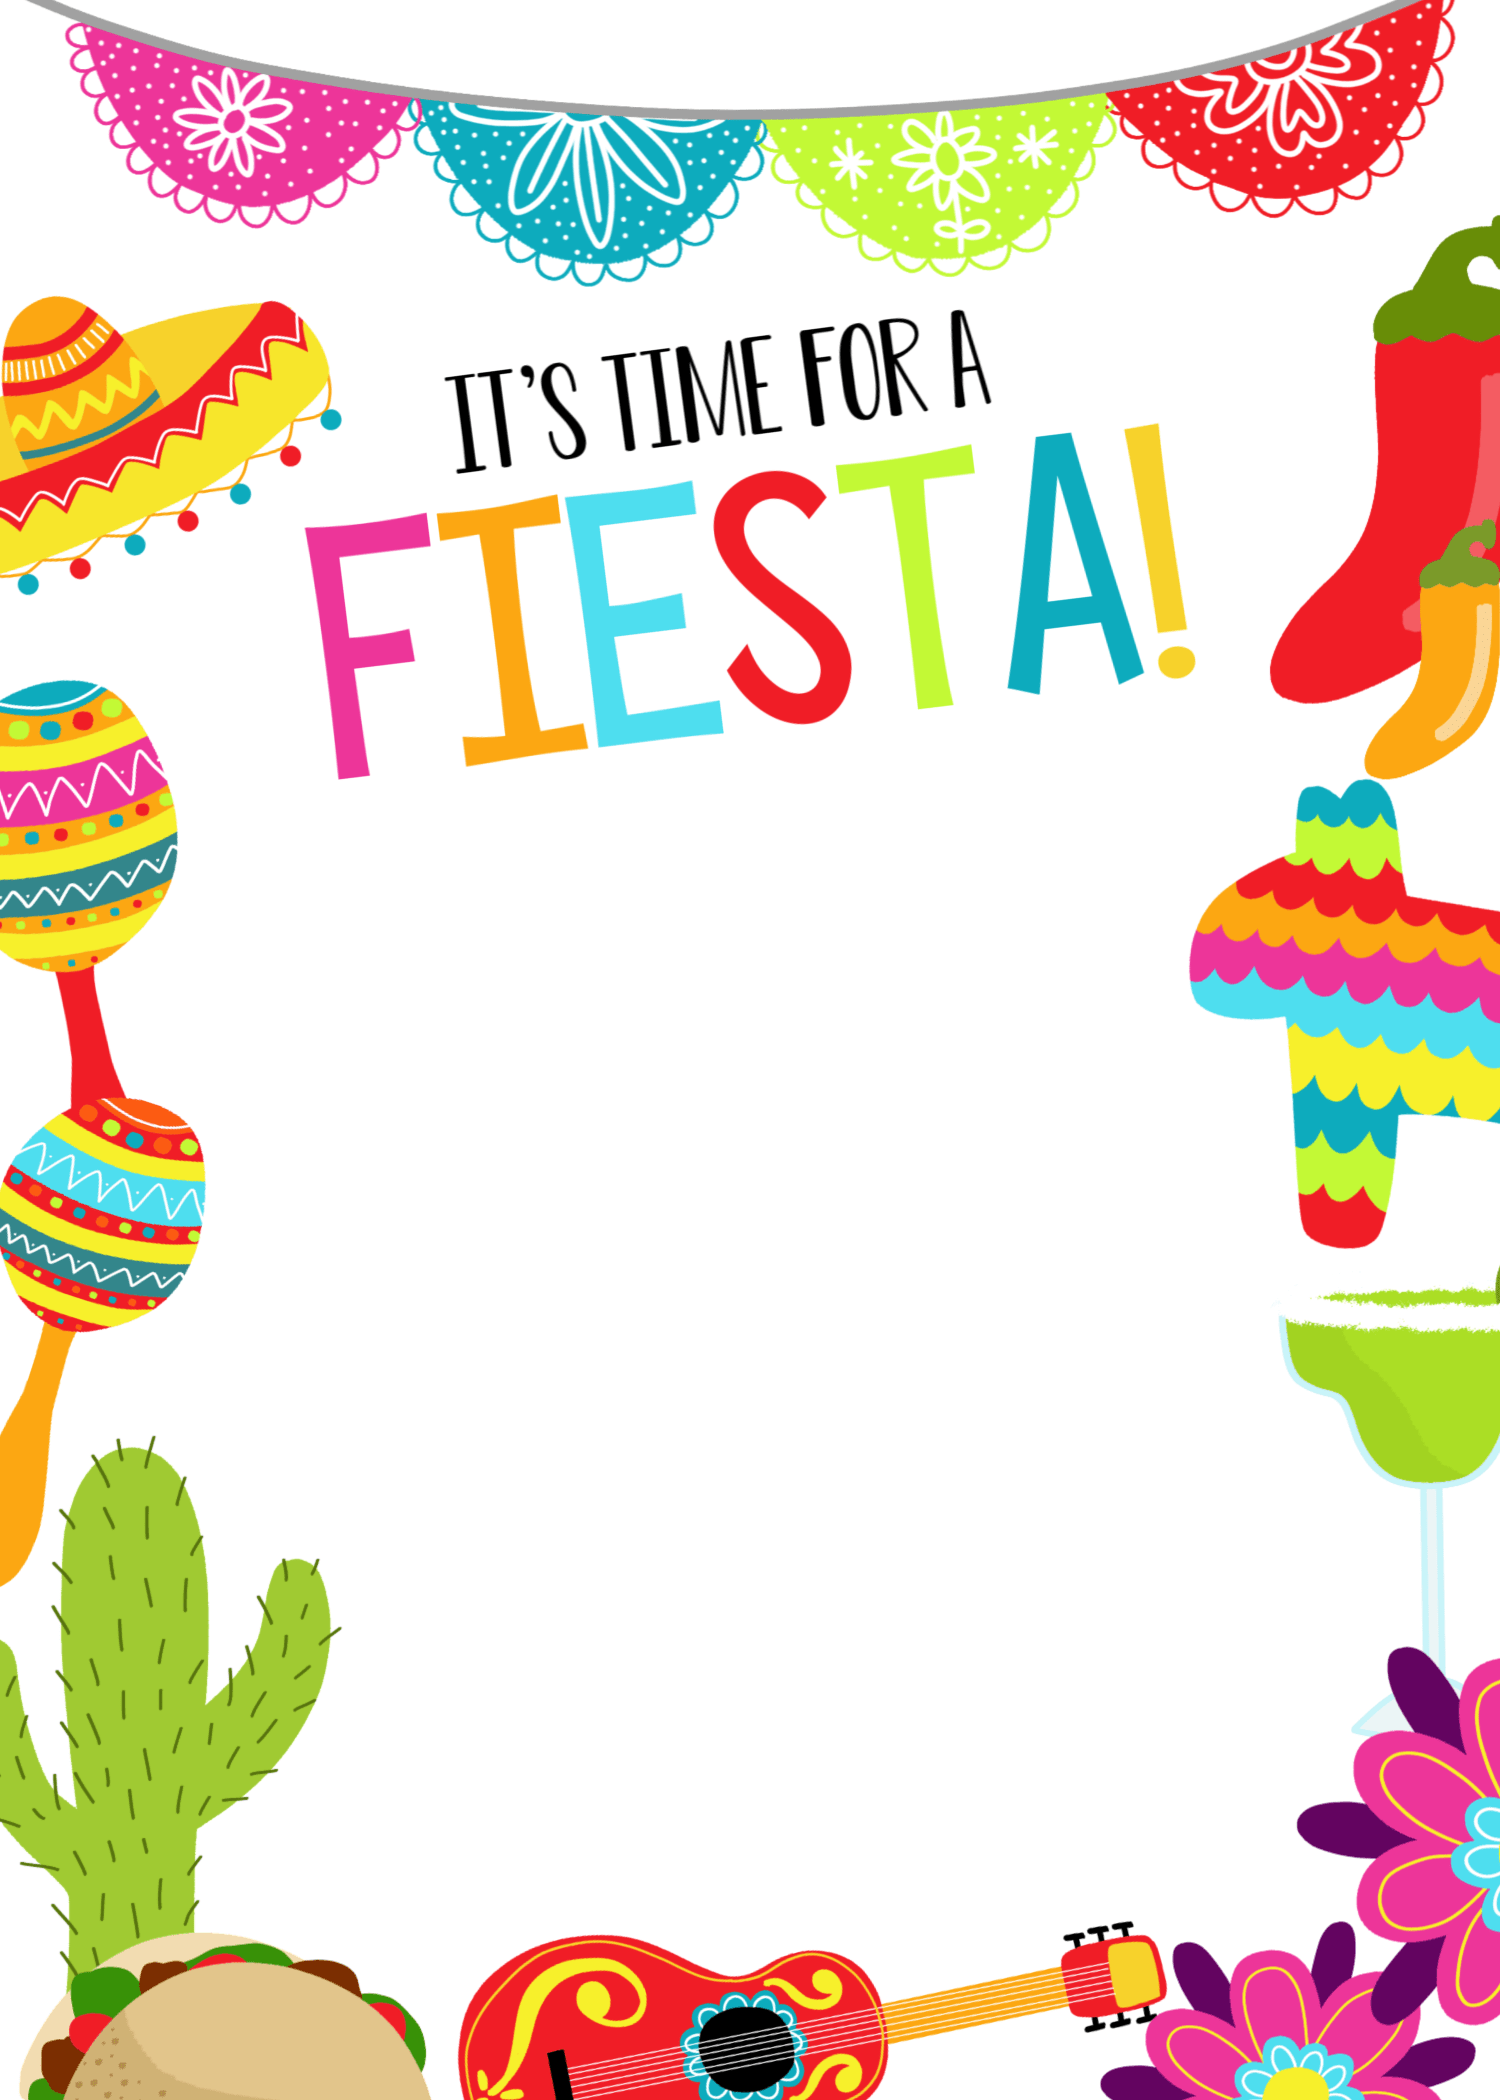 Fiesta Party Invitations Mexican Party Invitation Mexican Party Theme Party Invite Template